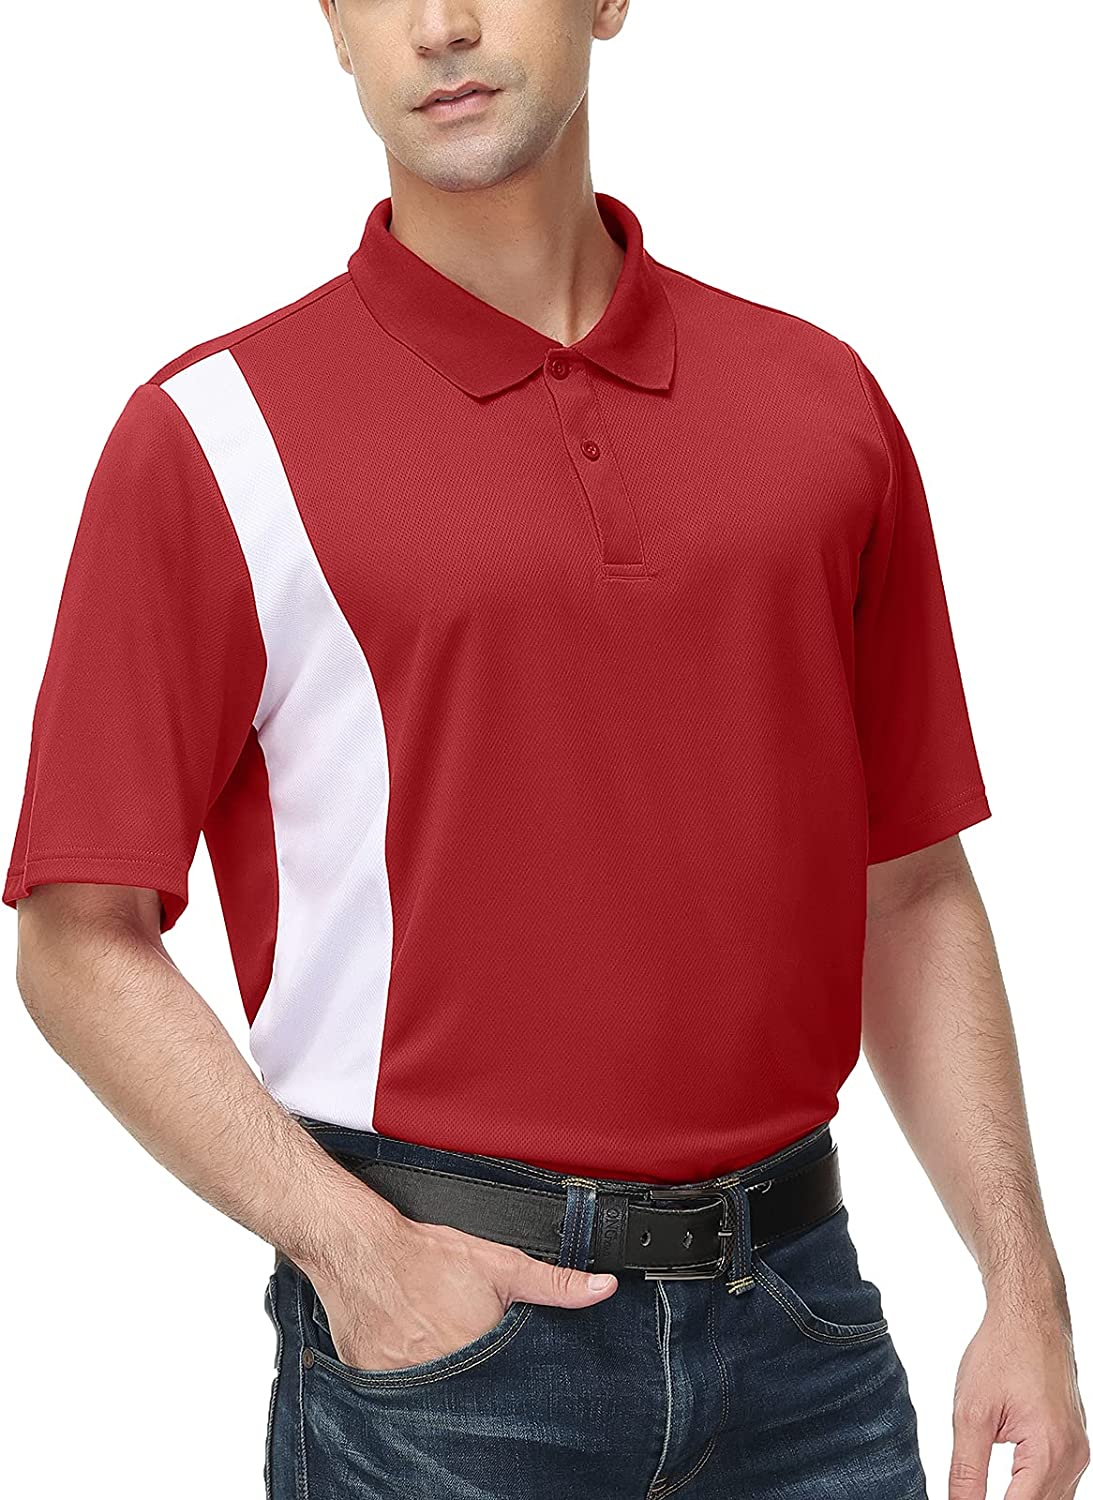 Men's Casual Classic Fit Short Color Max 78% OFF Moisture Blo Sleeve Wicking Kansas City Mall